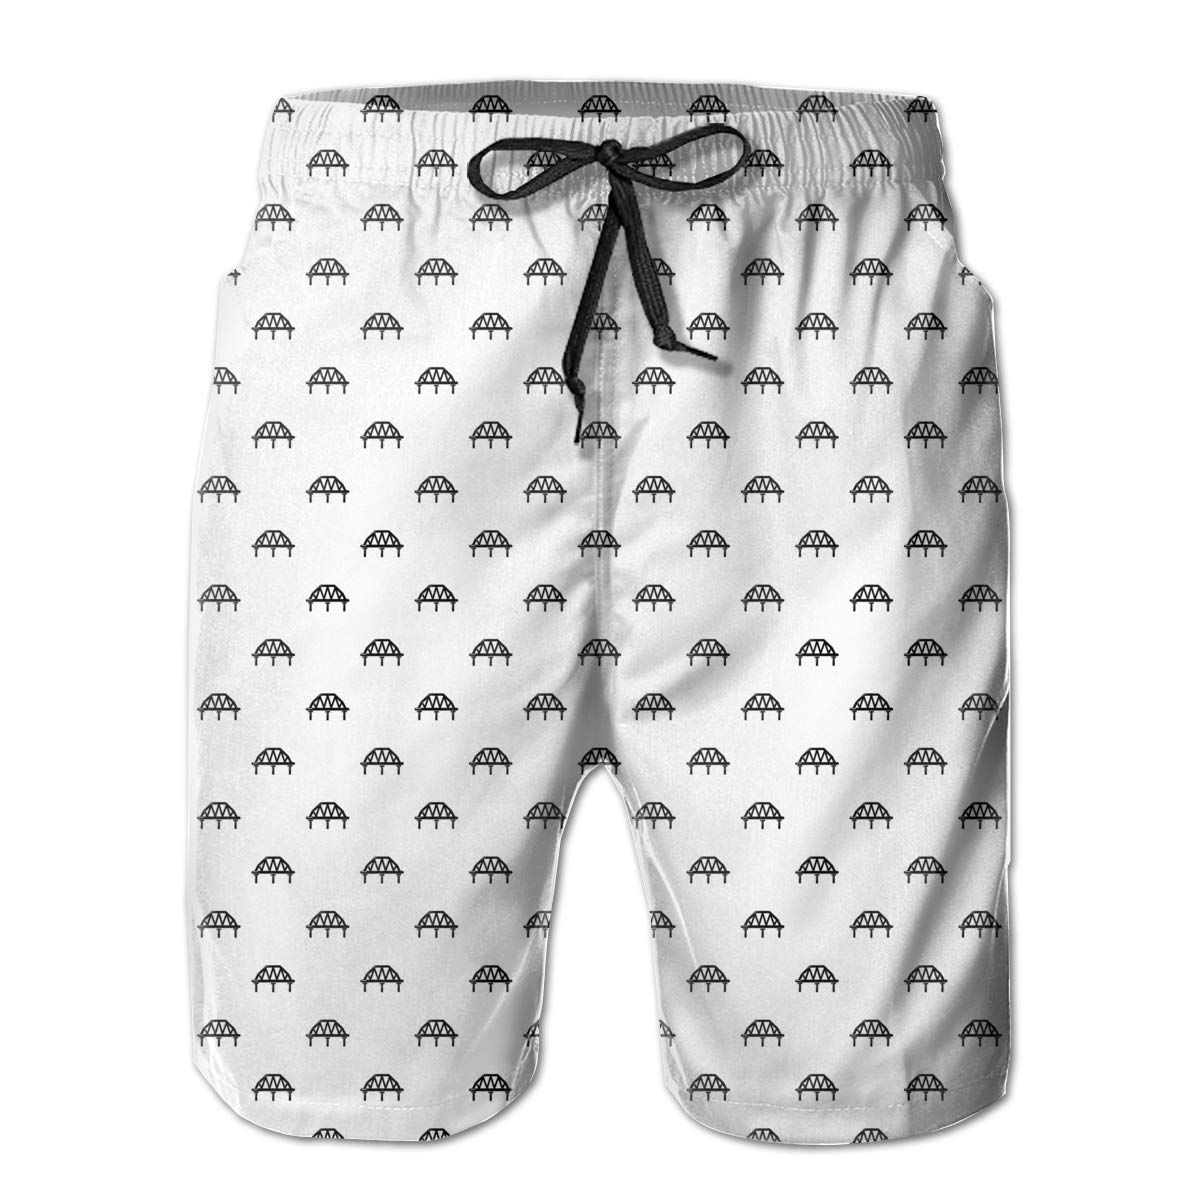 Polyester Arched Train Bridge Pattern Swimsuit with Pockets Xk7@KU Mens Casual Swim Trunks